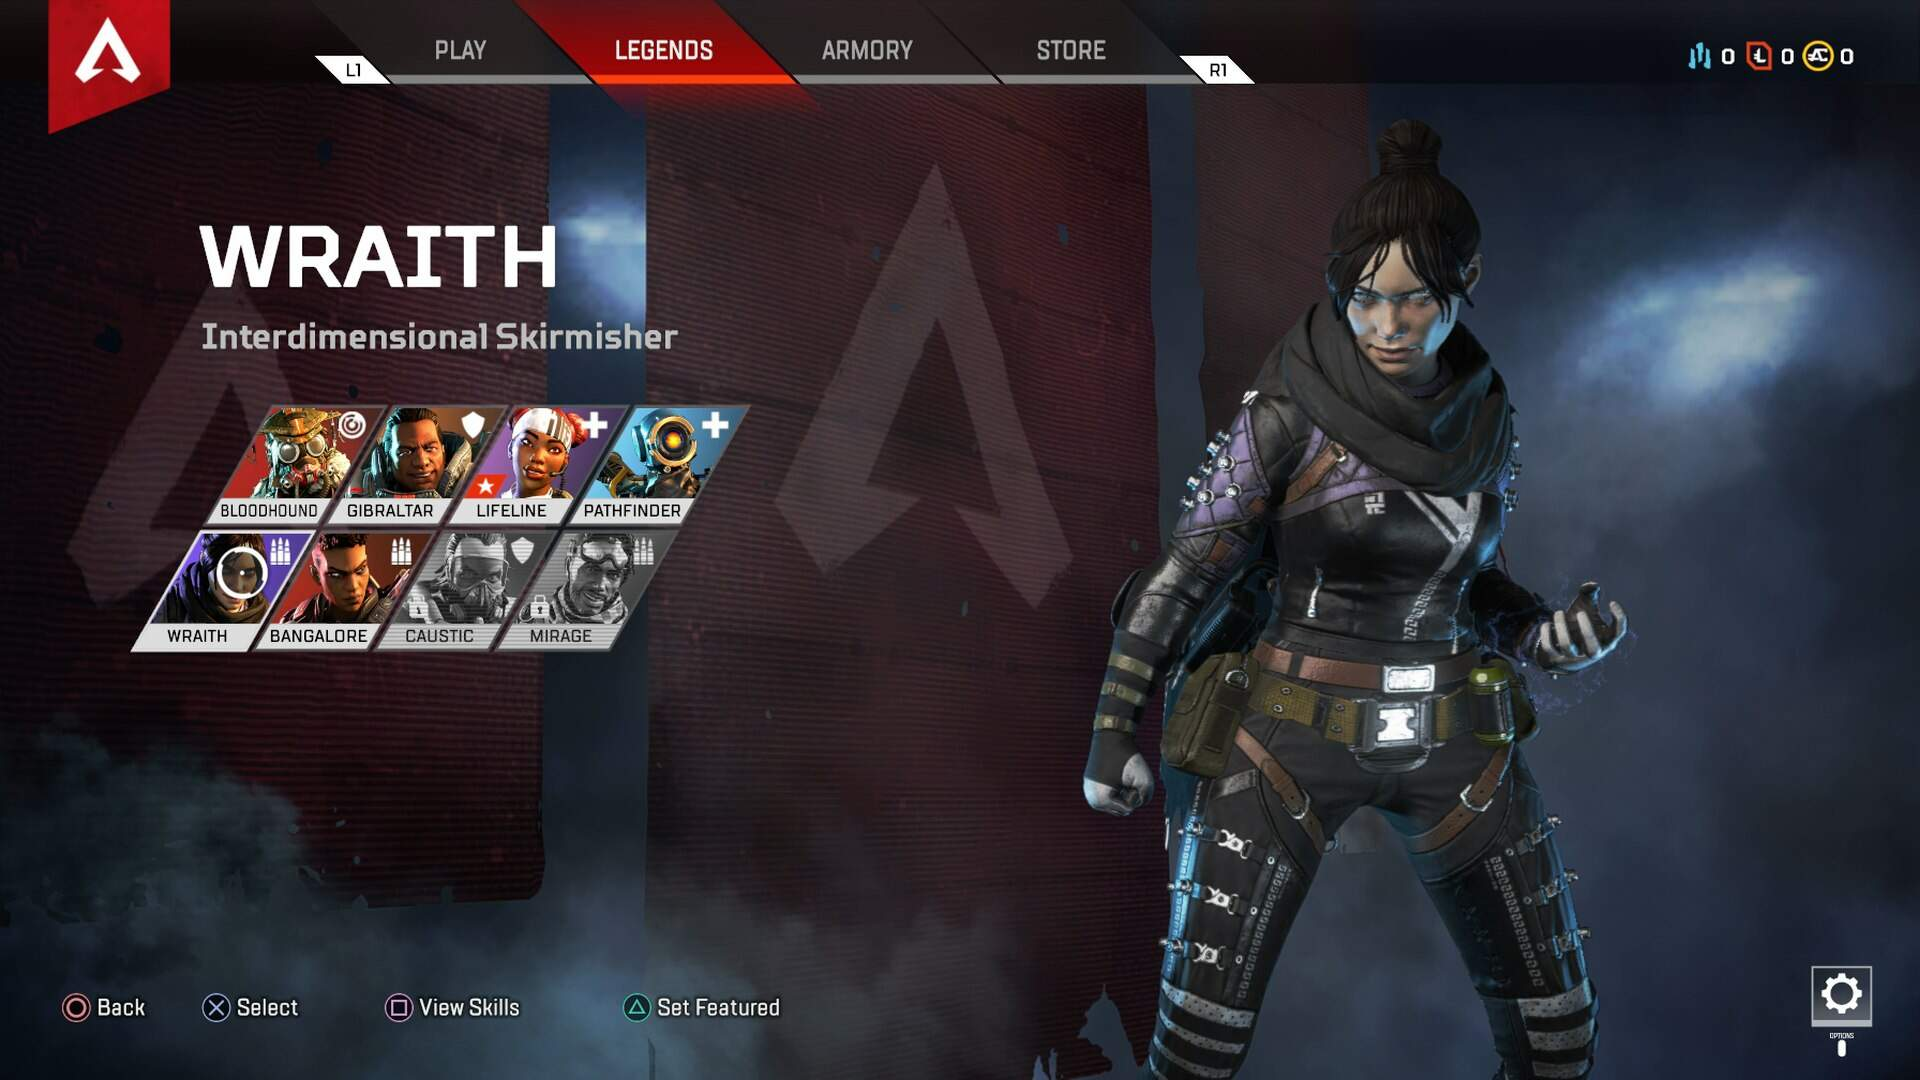 Apex Legends Wraith - Lore, Tips, Abilities, Legendary Skins, How to Win With Wraith